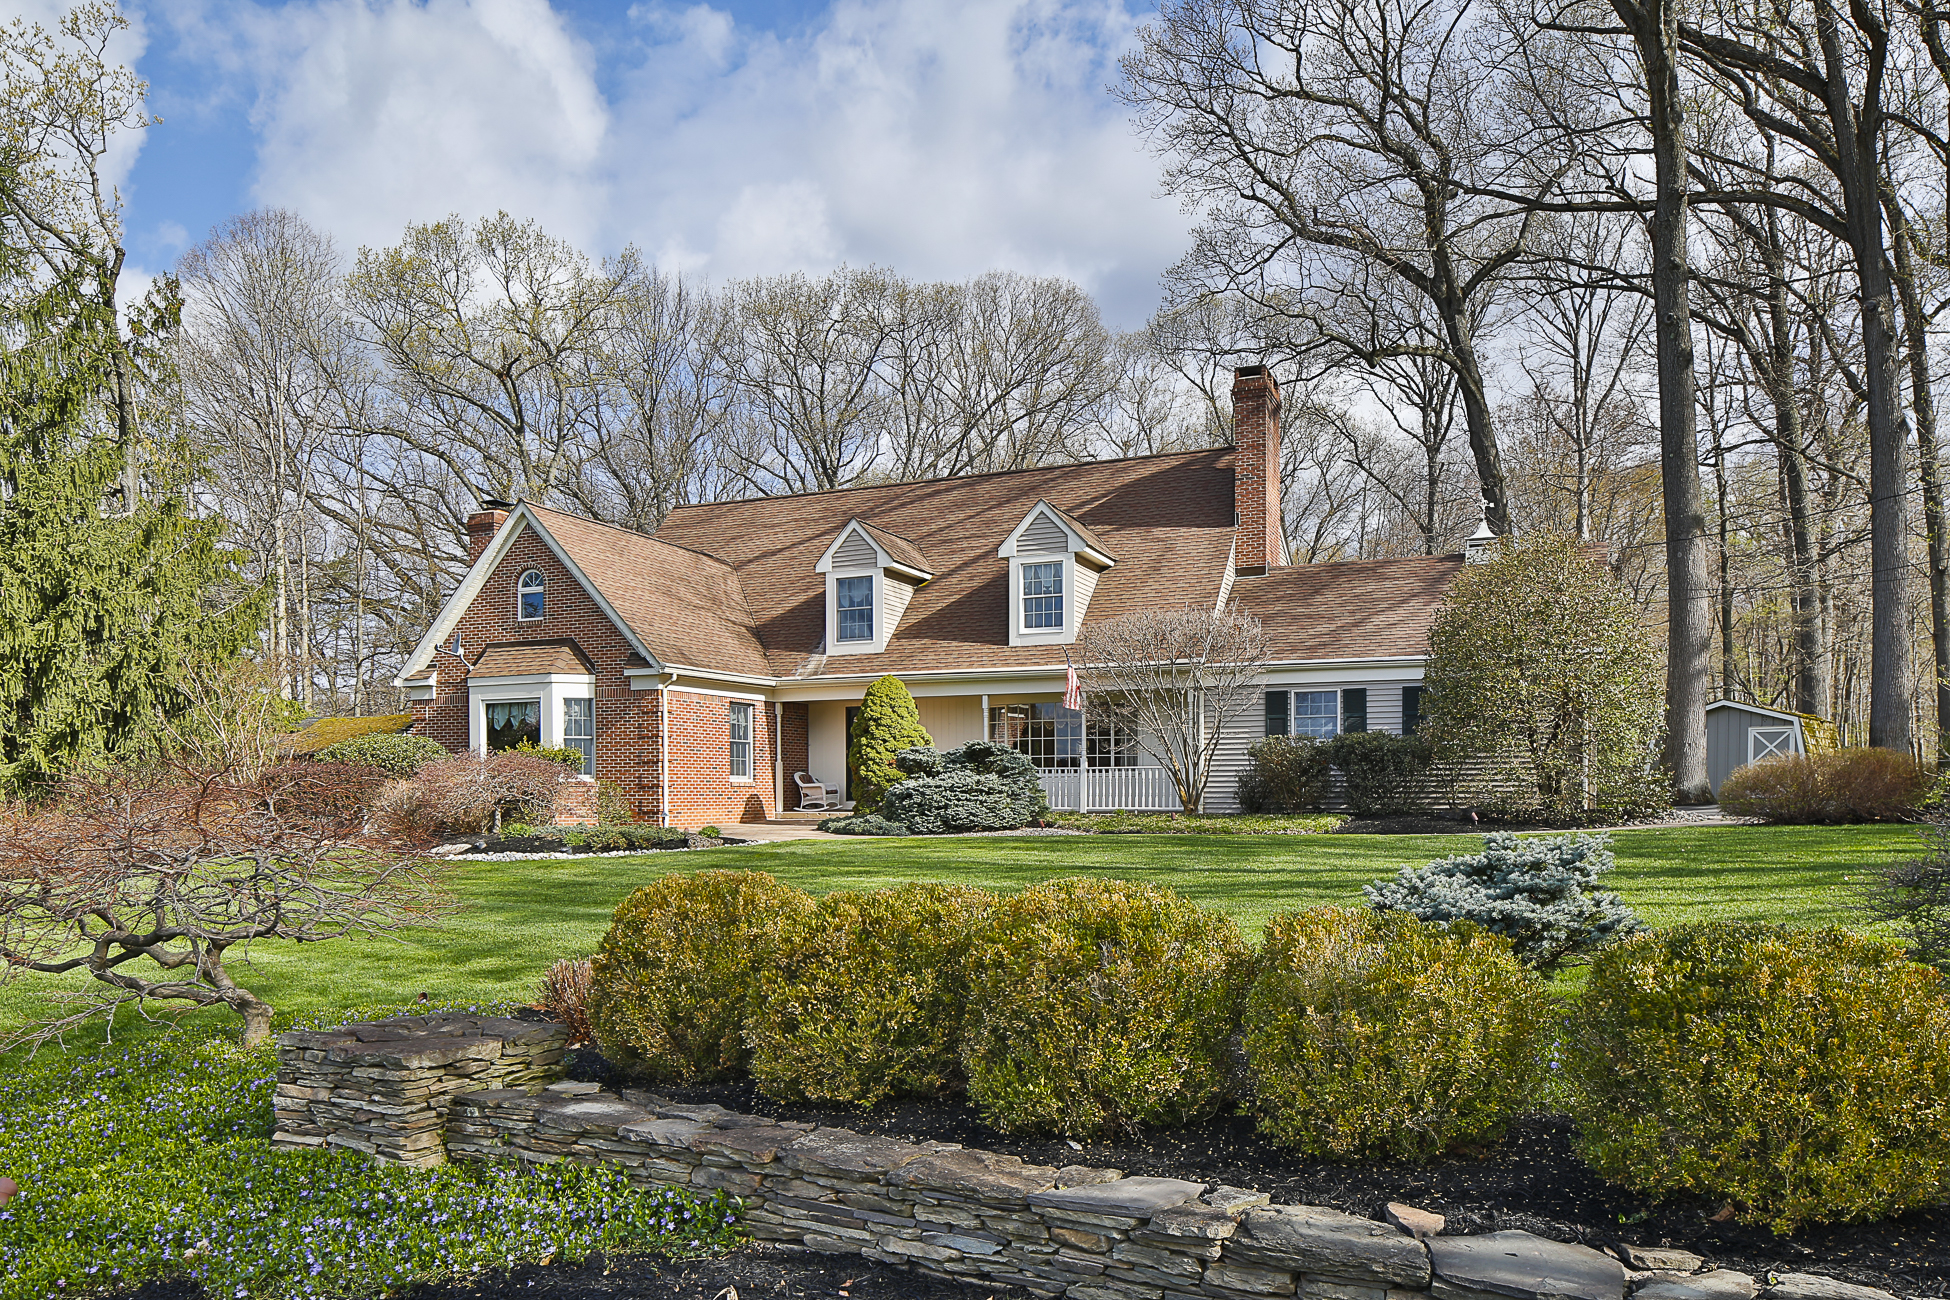 Single Family Home for Sale at Unlike Anything In The Area - Montgomery Township 284 Sunset Road Skillman, New Jersey 08558 United States